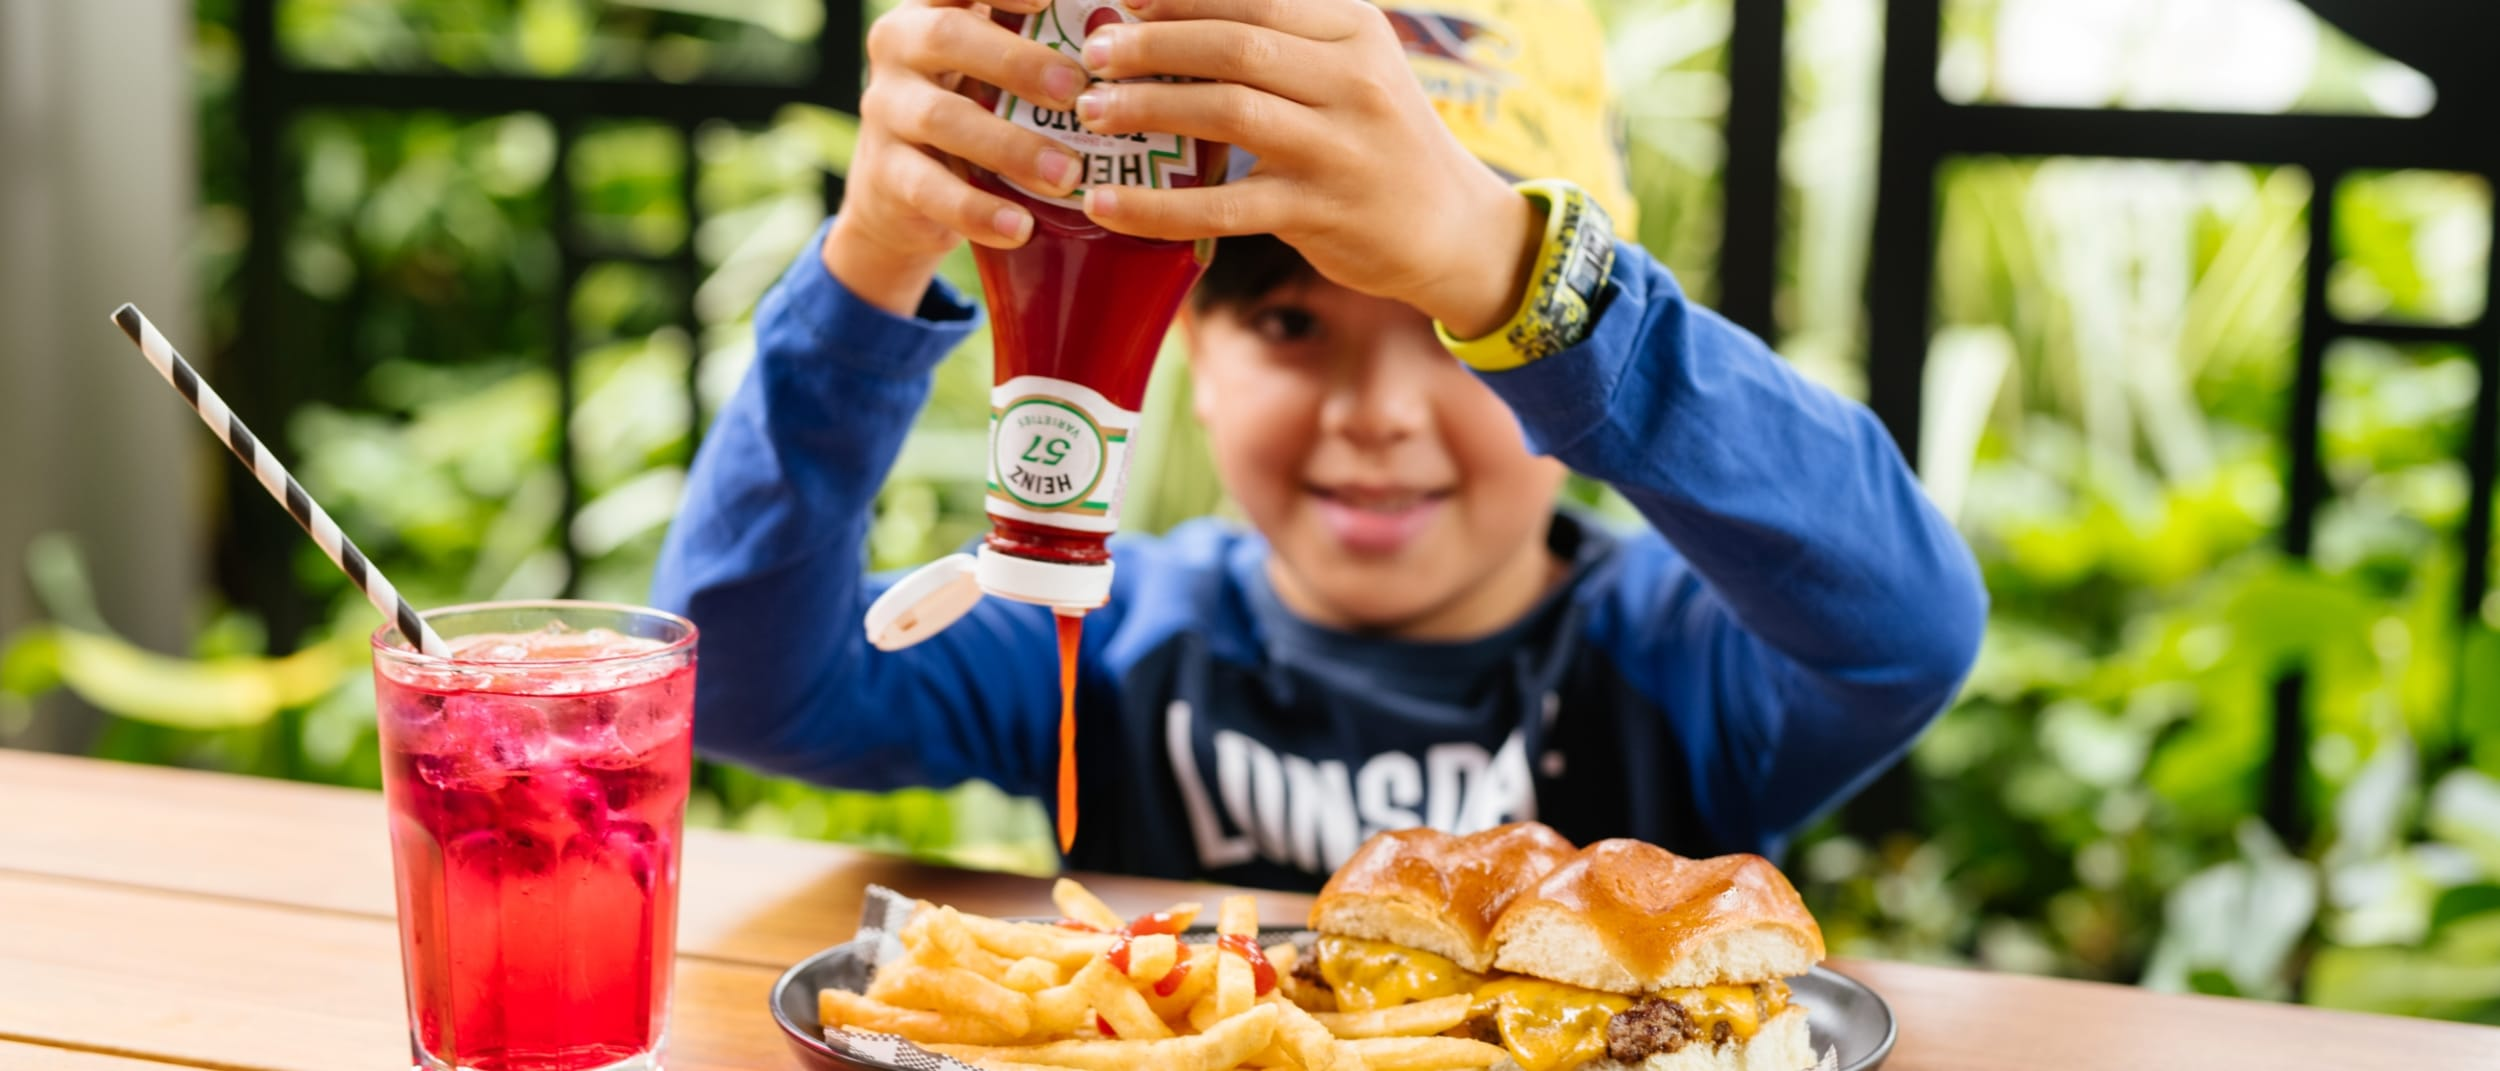 The Waverley Brewhouse: kids eat free